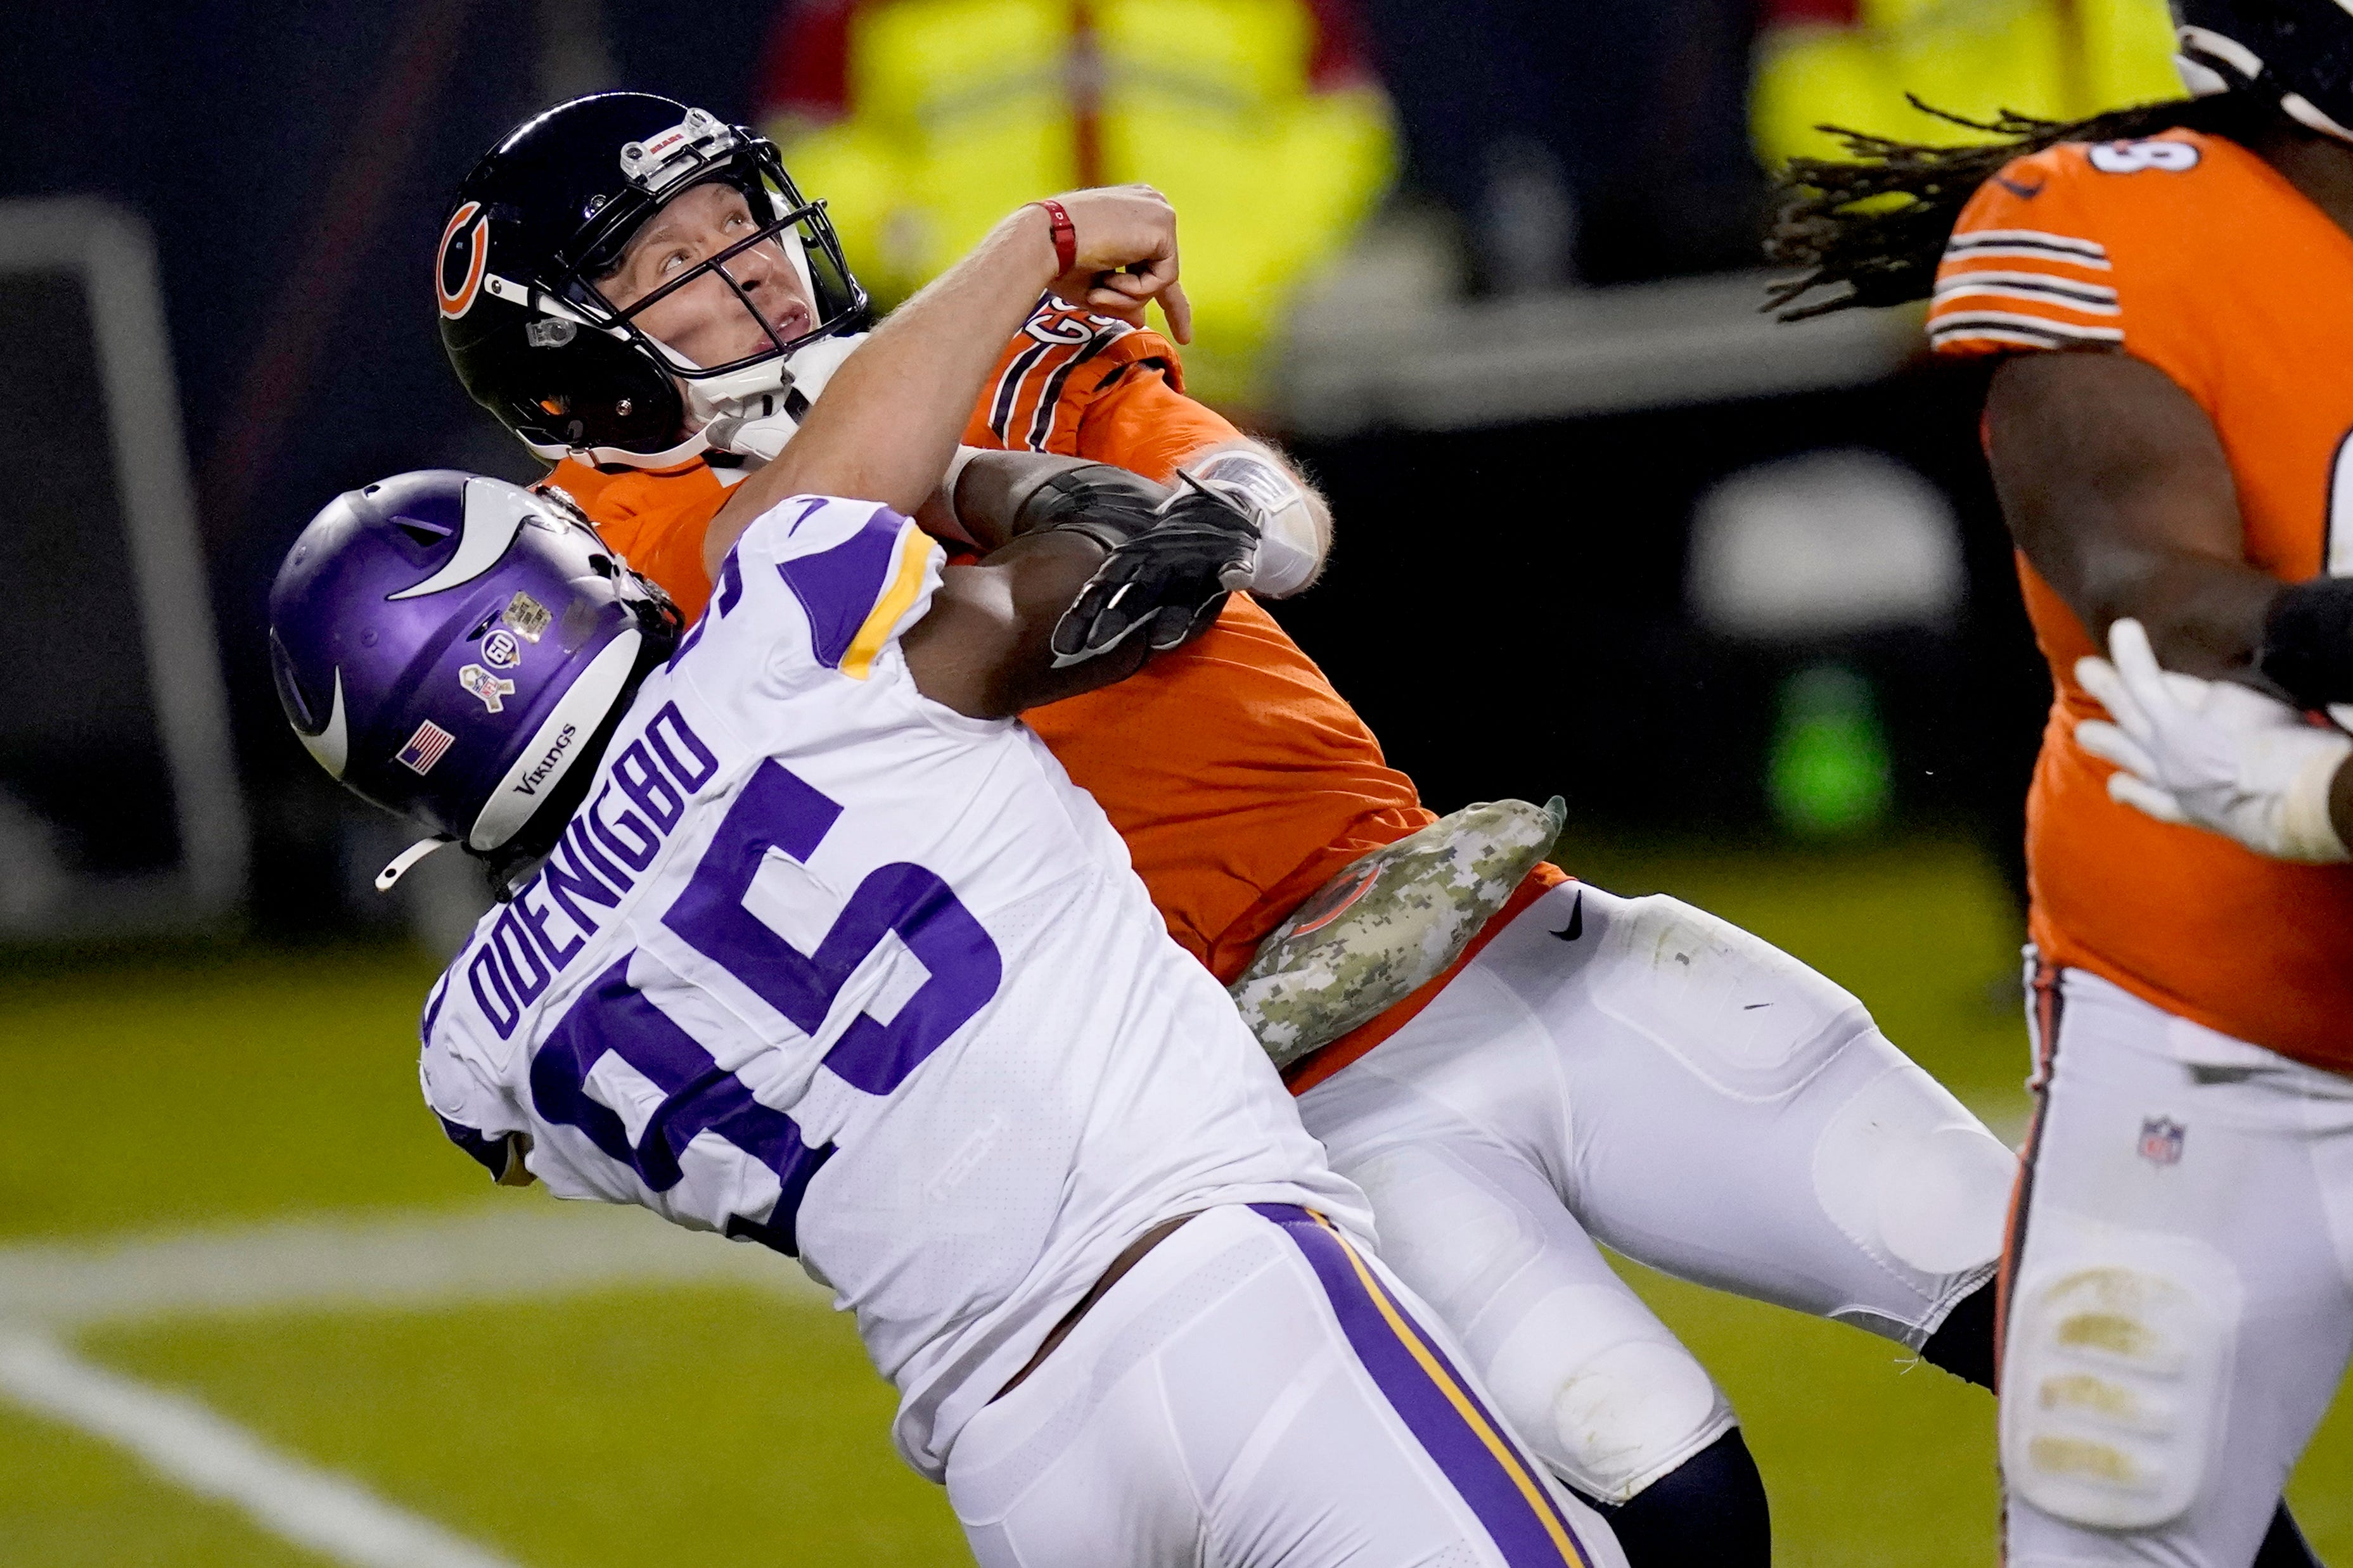 Chicago Bears QB Nick Foles carted off field late in loss to Minnesota Vikings